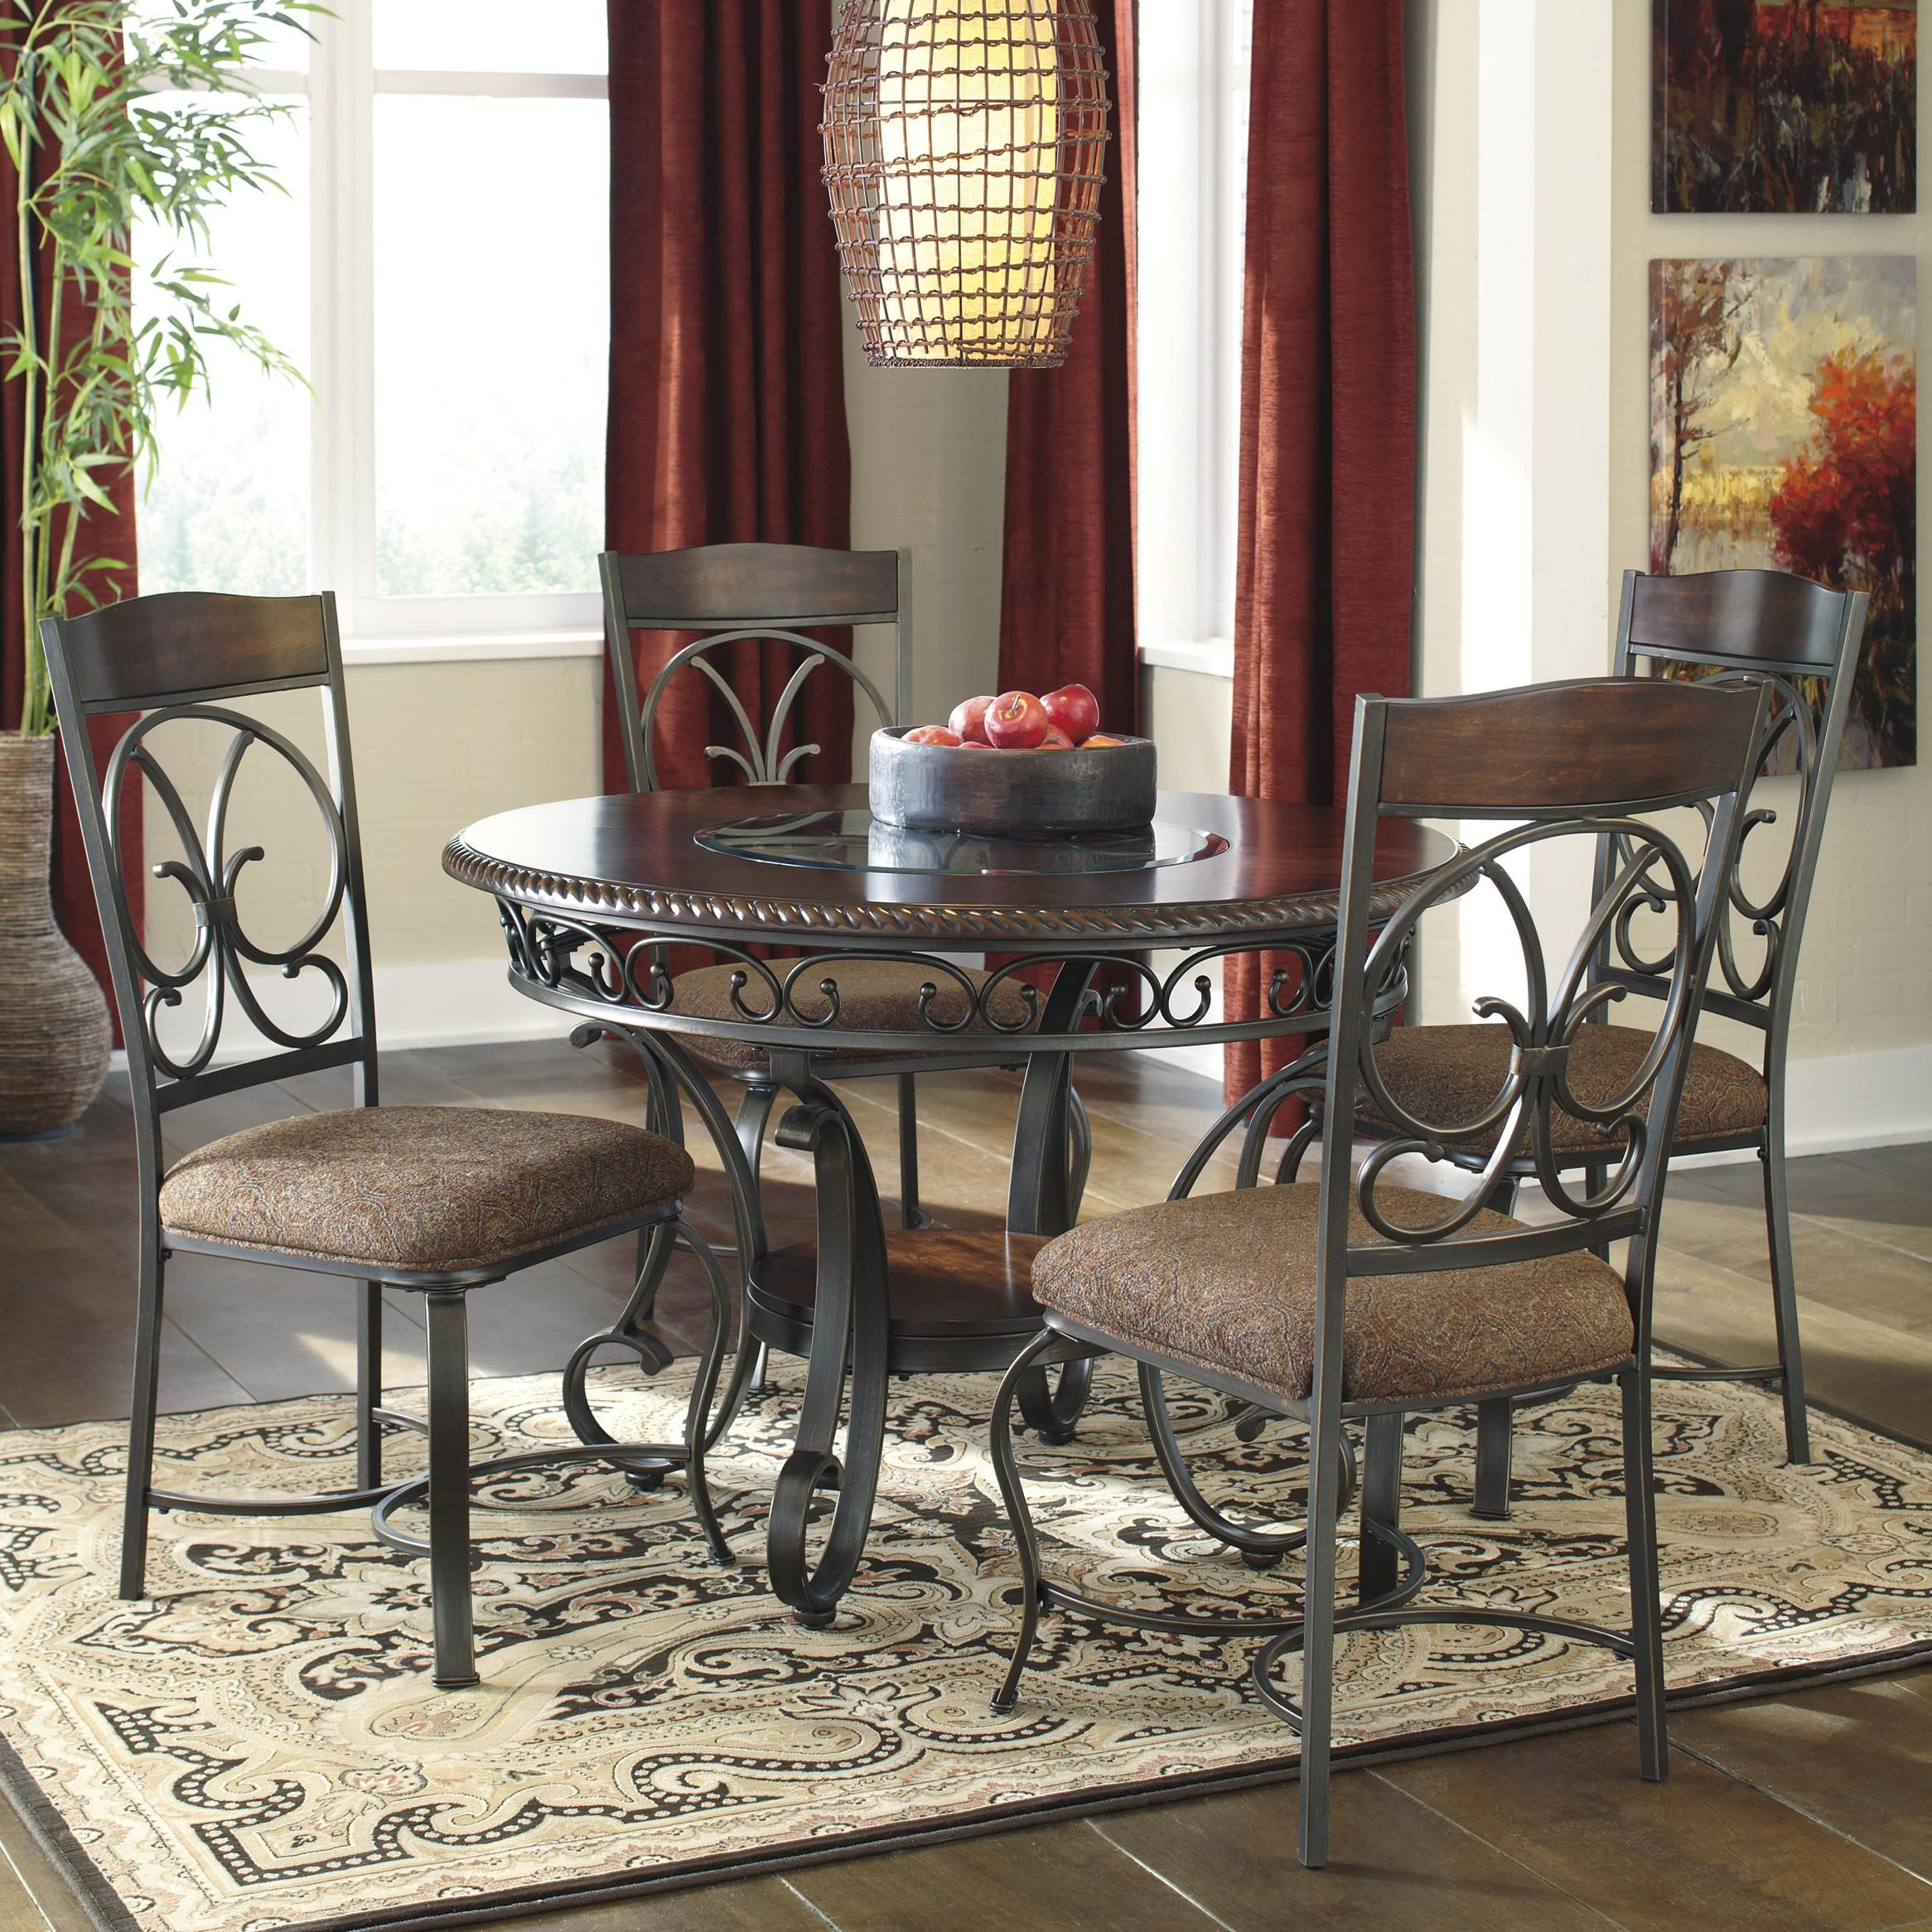 Royal Kitchen Design: Glambrey Round Dining Table And Chair Set By Signature